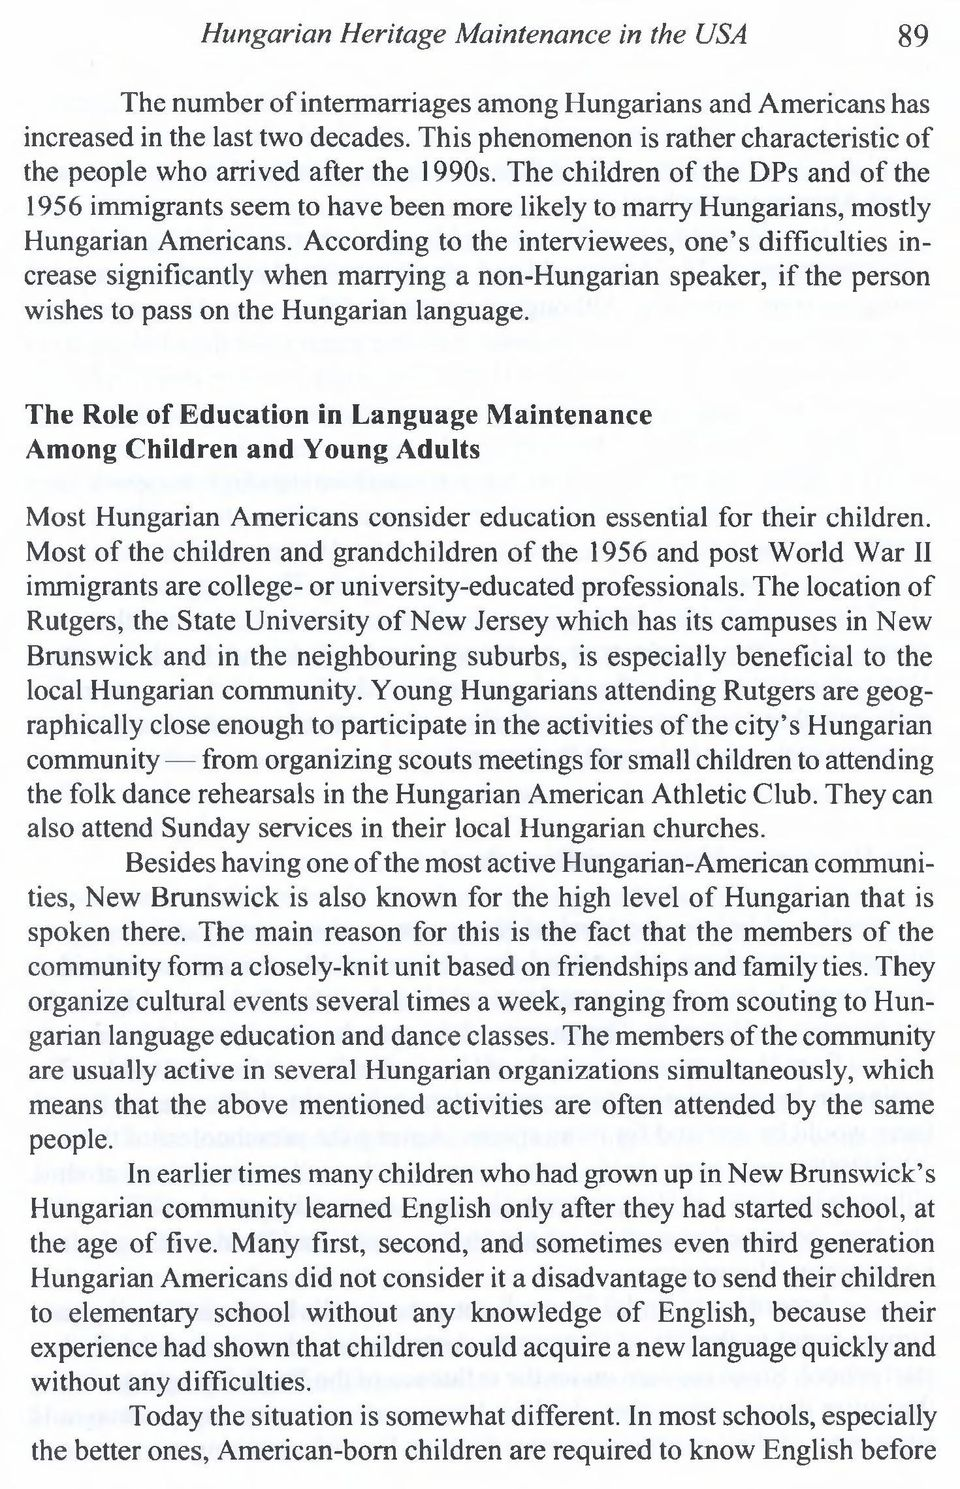 The children of the DPs and of the 1956 immigrants seem to have been more likely to marry Hungarians, mostly Hungarian Americans.